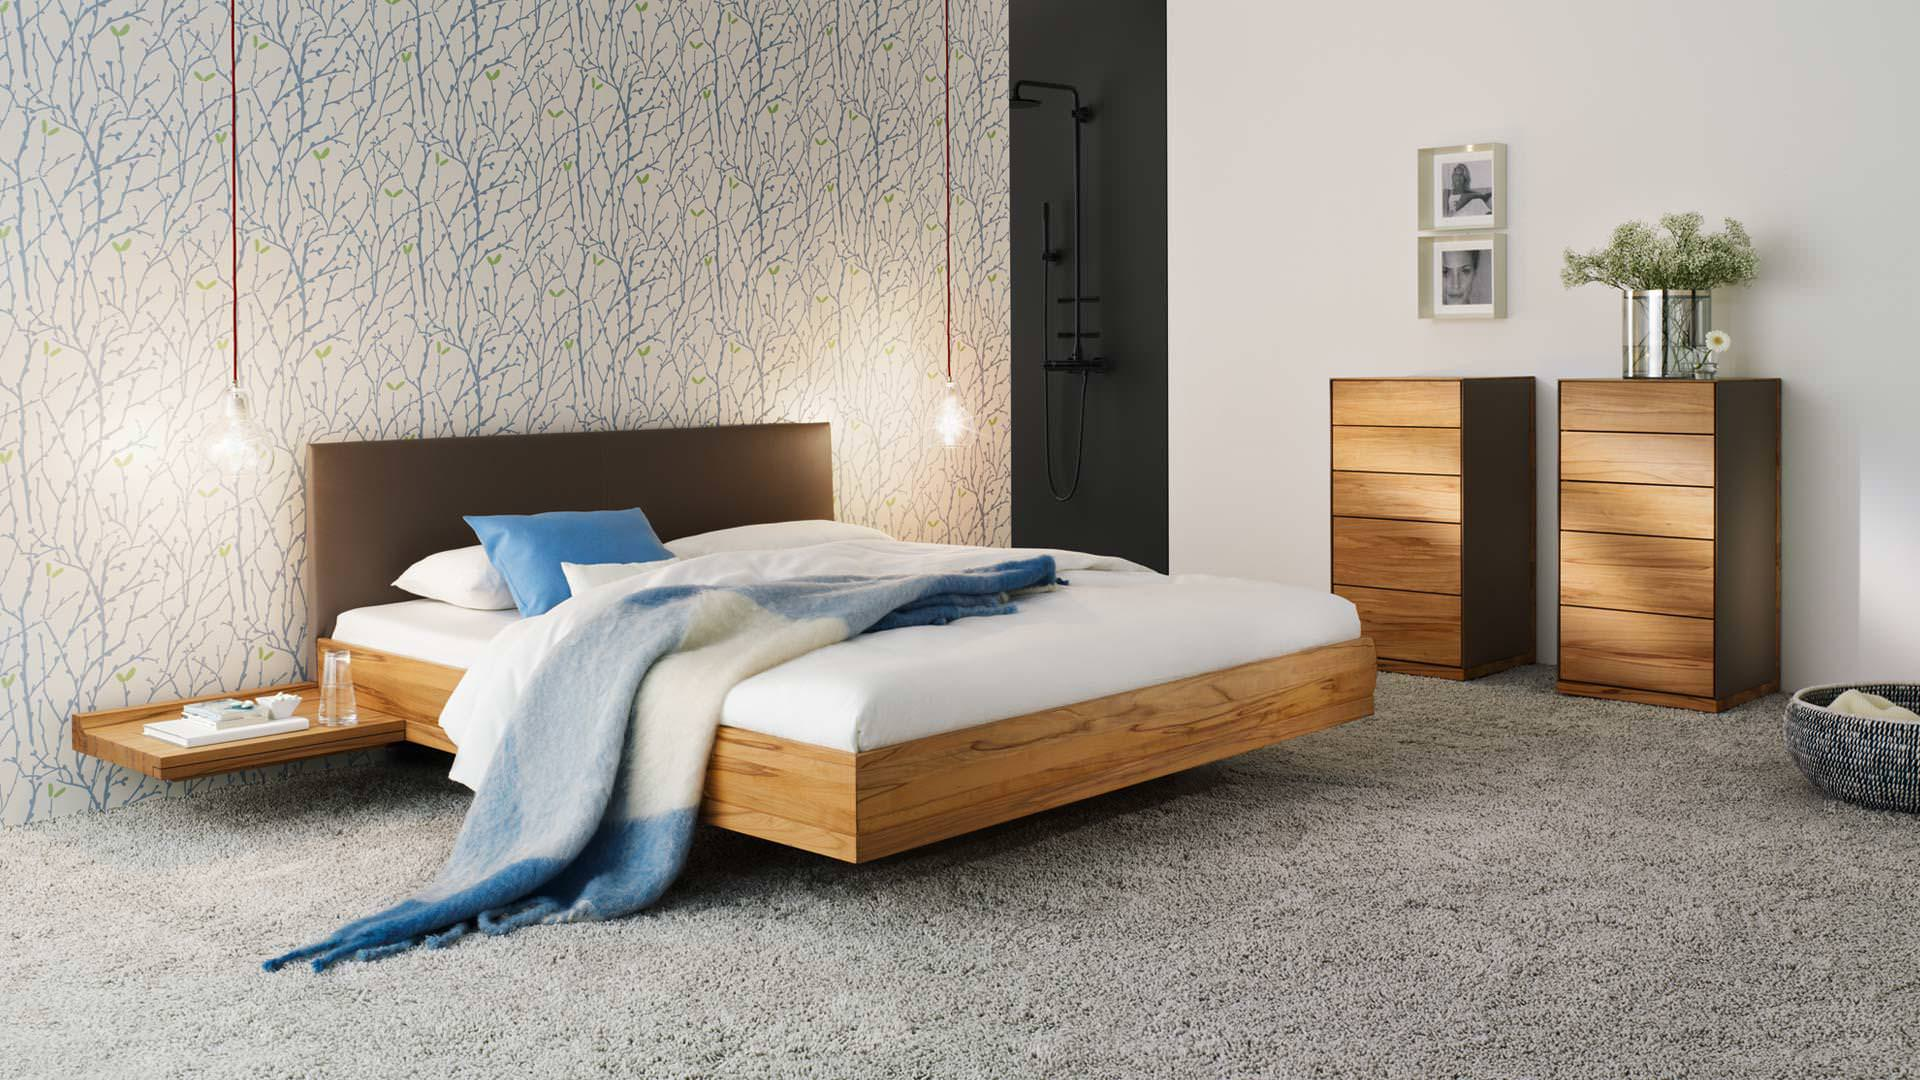 schlafzimmerm bel kaufen team7 betten und schrank systeme. Black Bedroom Furniture Sets. Home Design Ideas